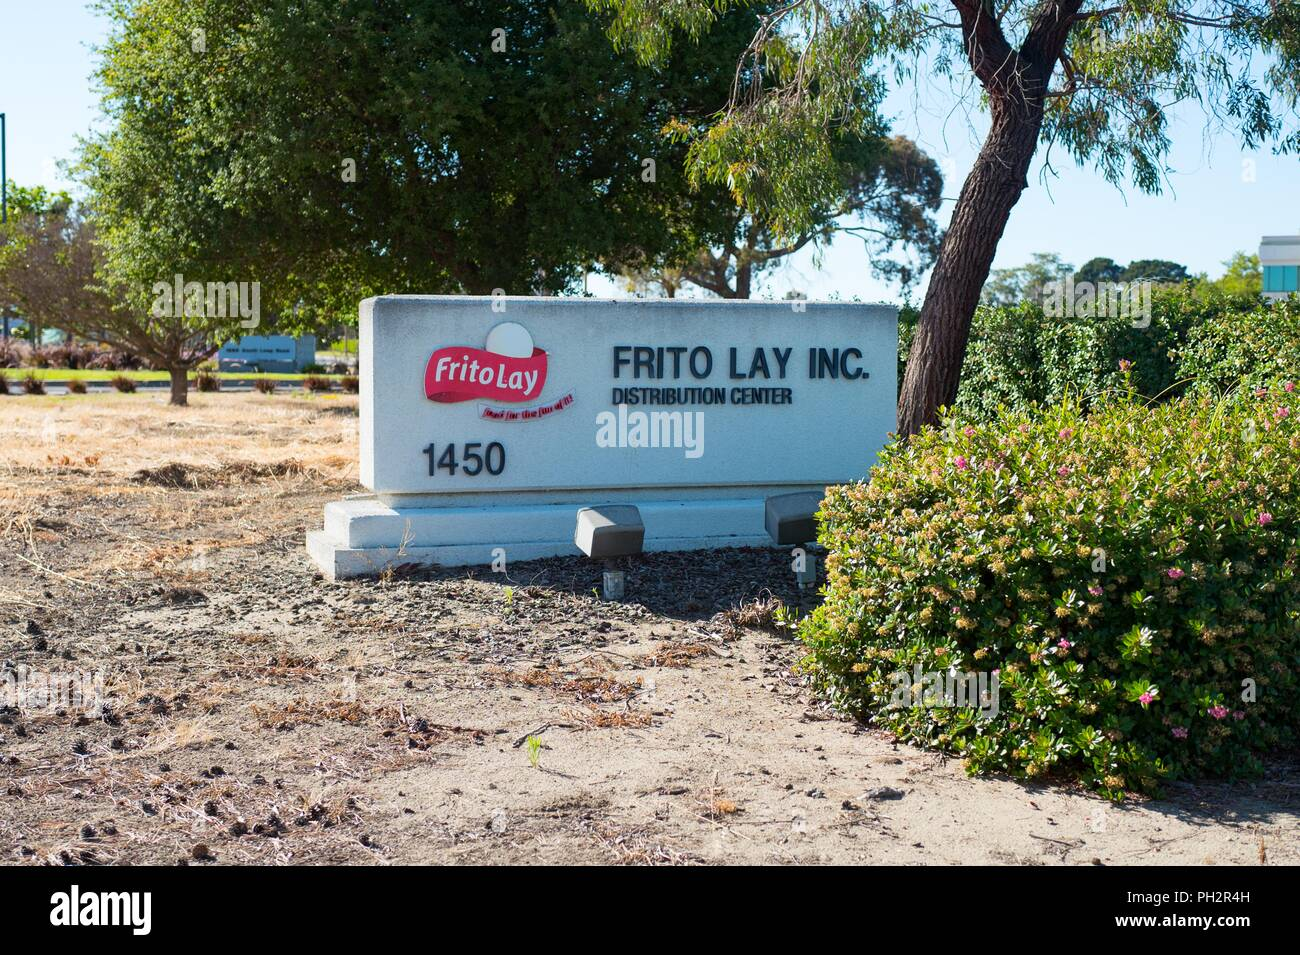 Sign with logo at entrance to Frito Lay Inc snack food distribution center on Bay Farm Island, Alameda, California, July 9, 2018. () - Stock Image